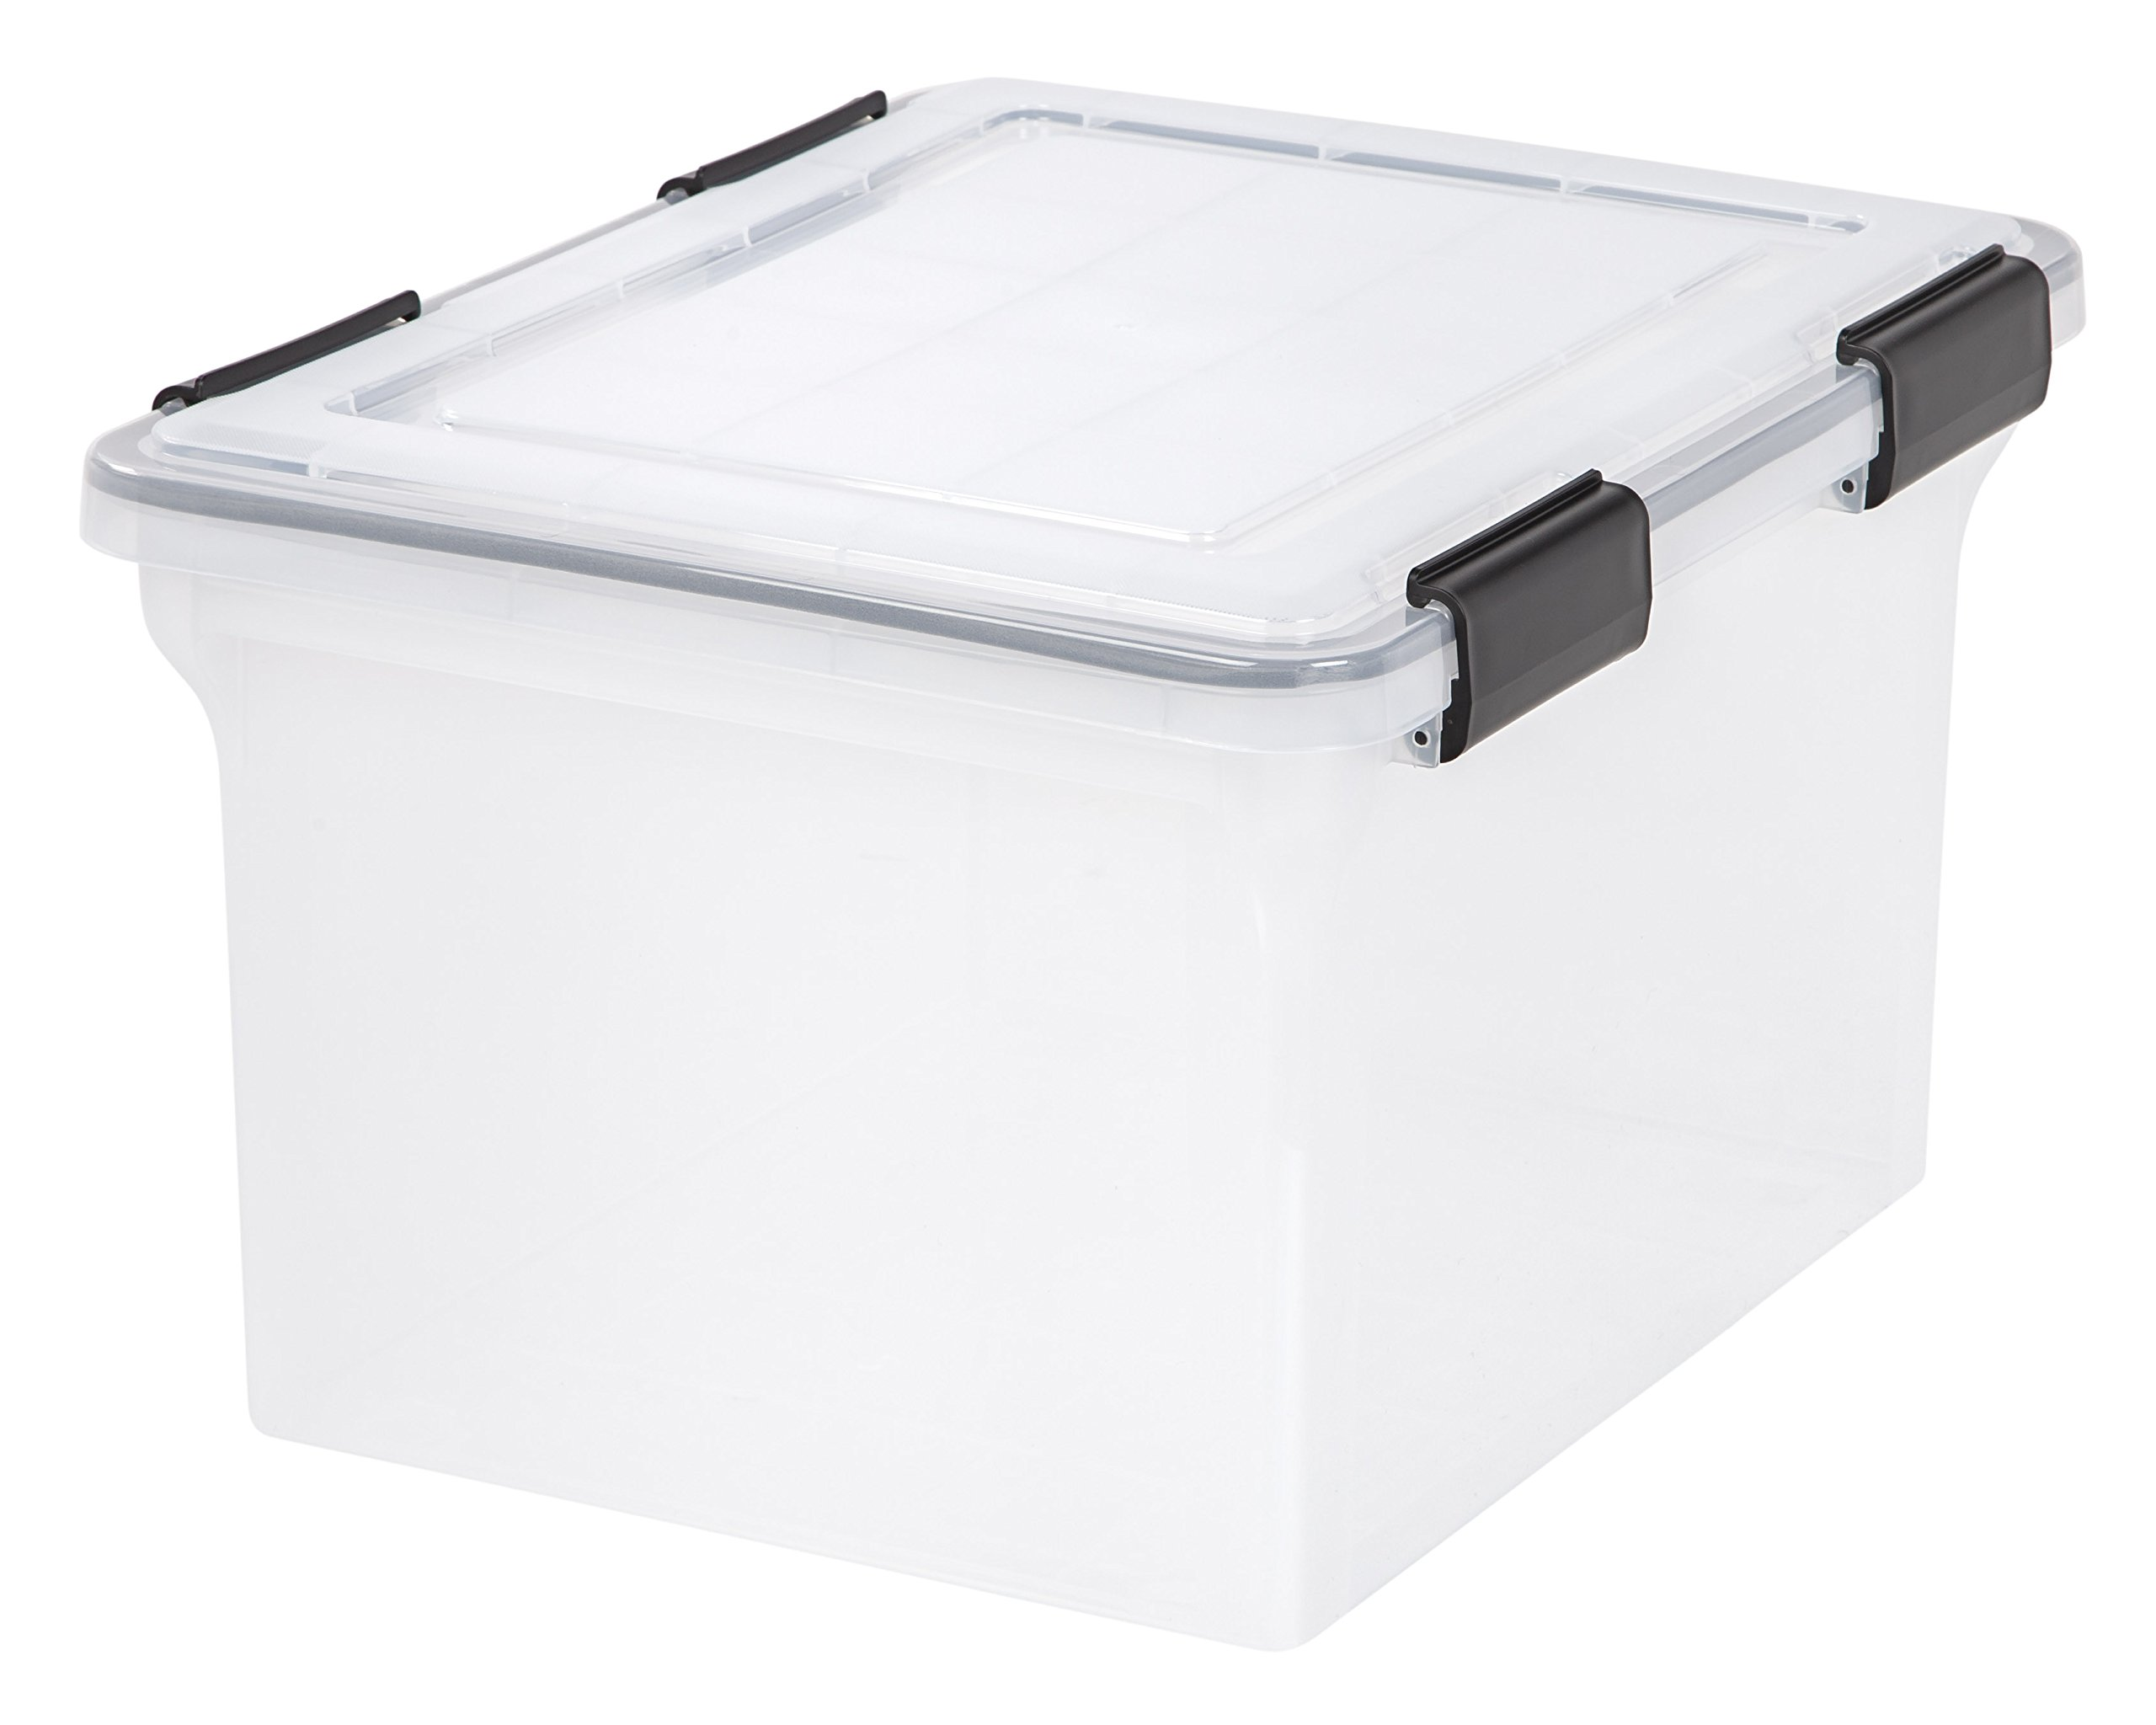 IRIS Letter and Legal Size WEATHERTIGHT File Box, Clear by IRIS USA, Inc. (Image #2)